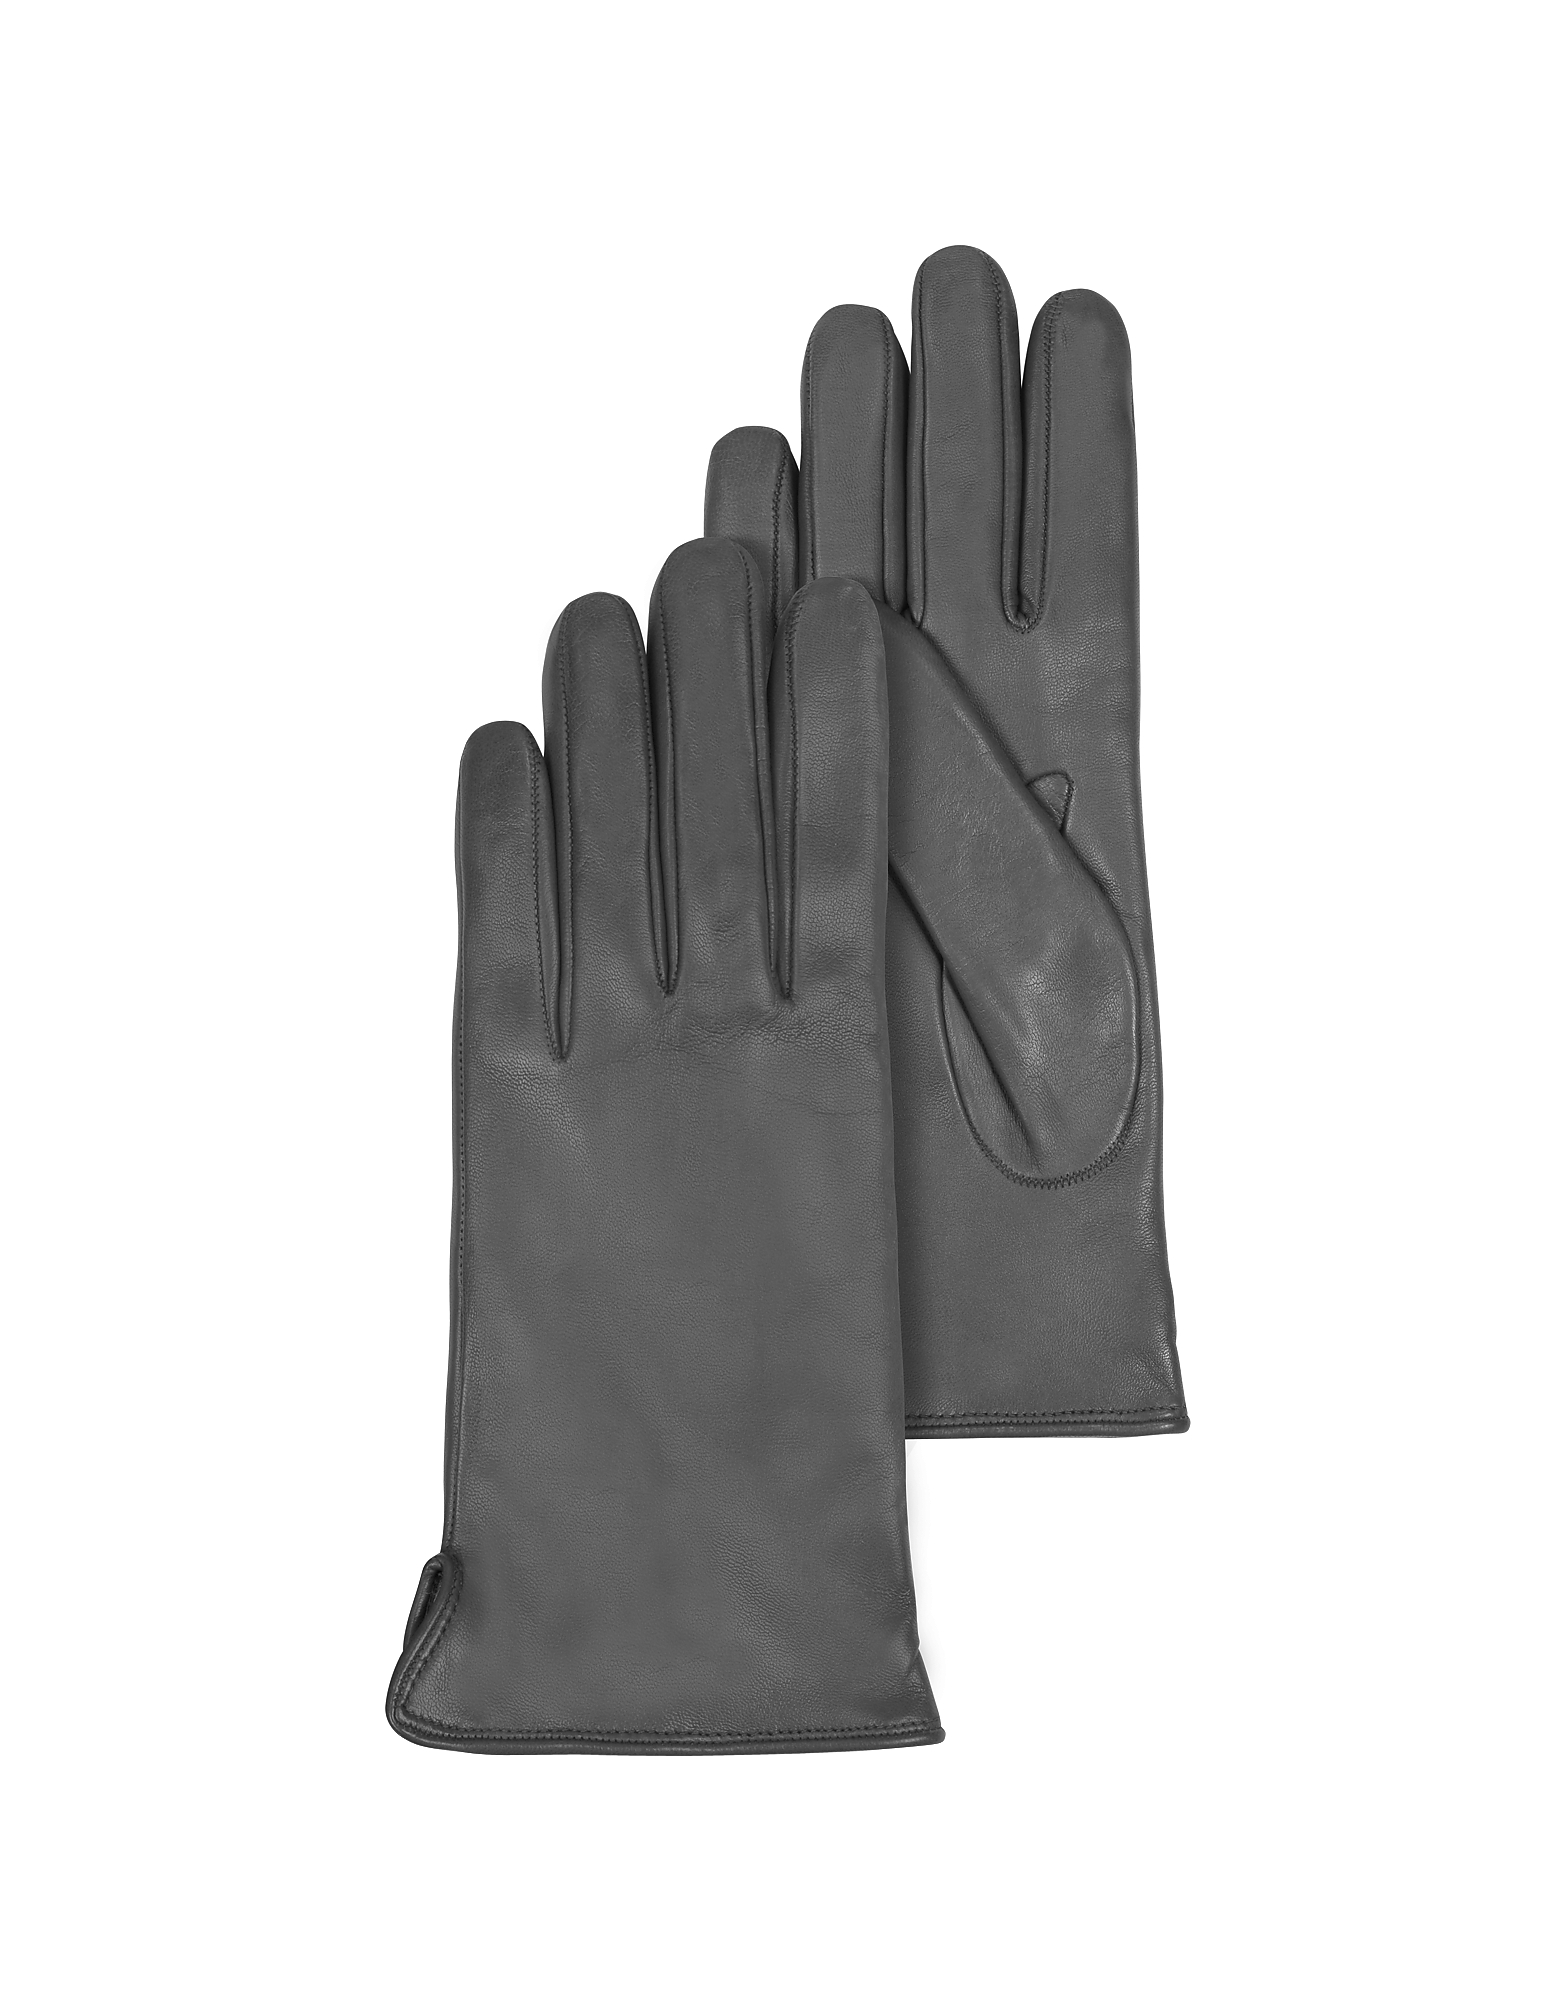 Dark Gray Leather Women's Gloves w/Cashmere Lining